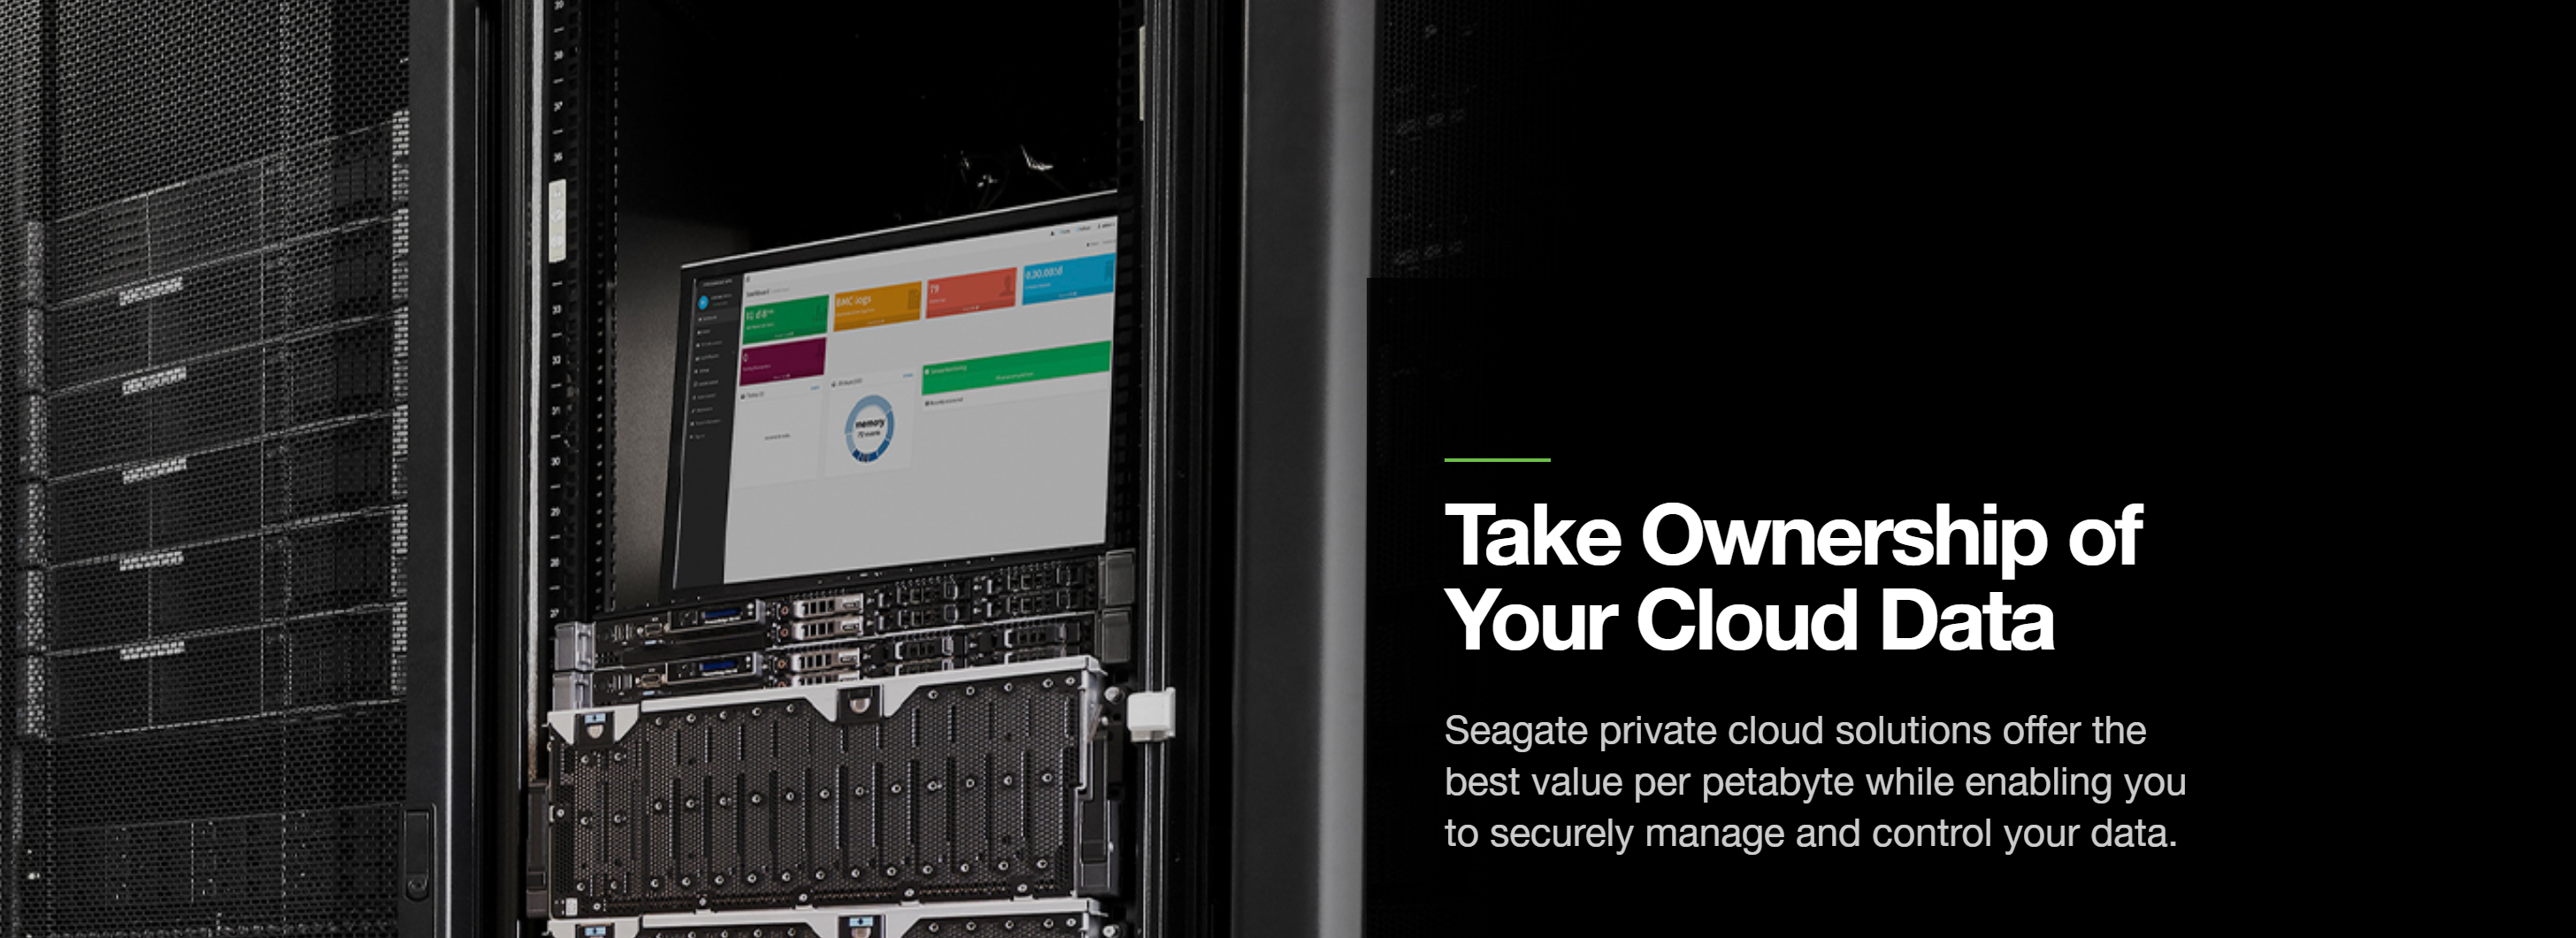 seagatecloud.png